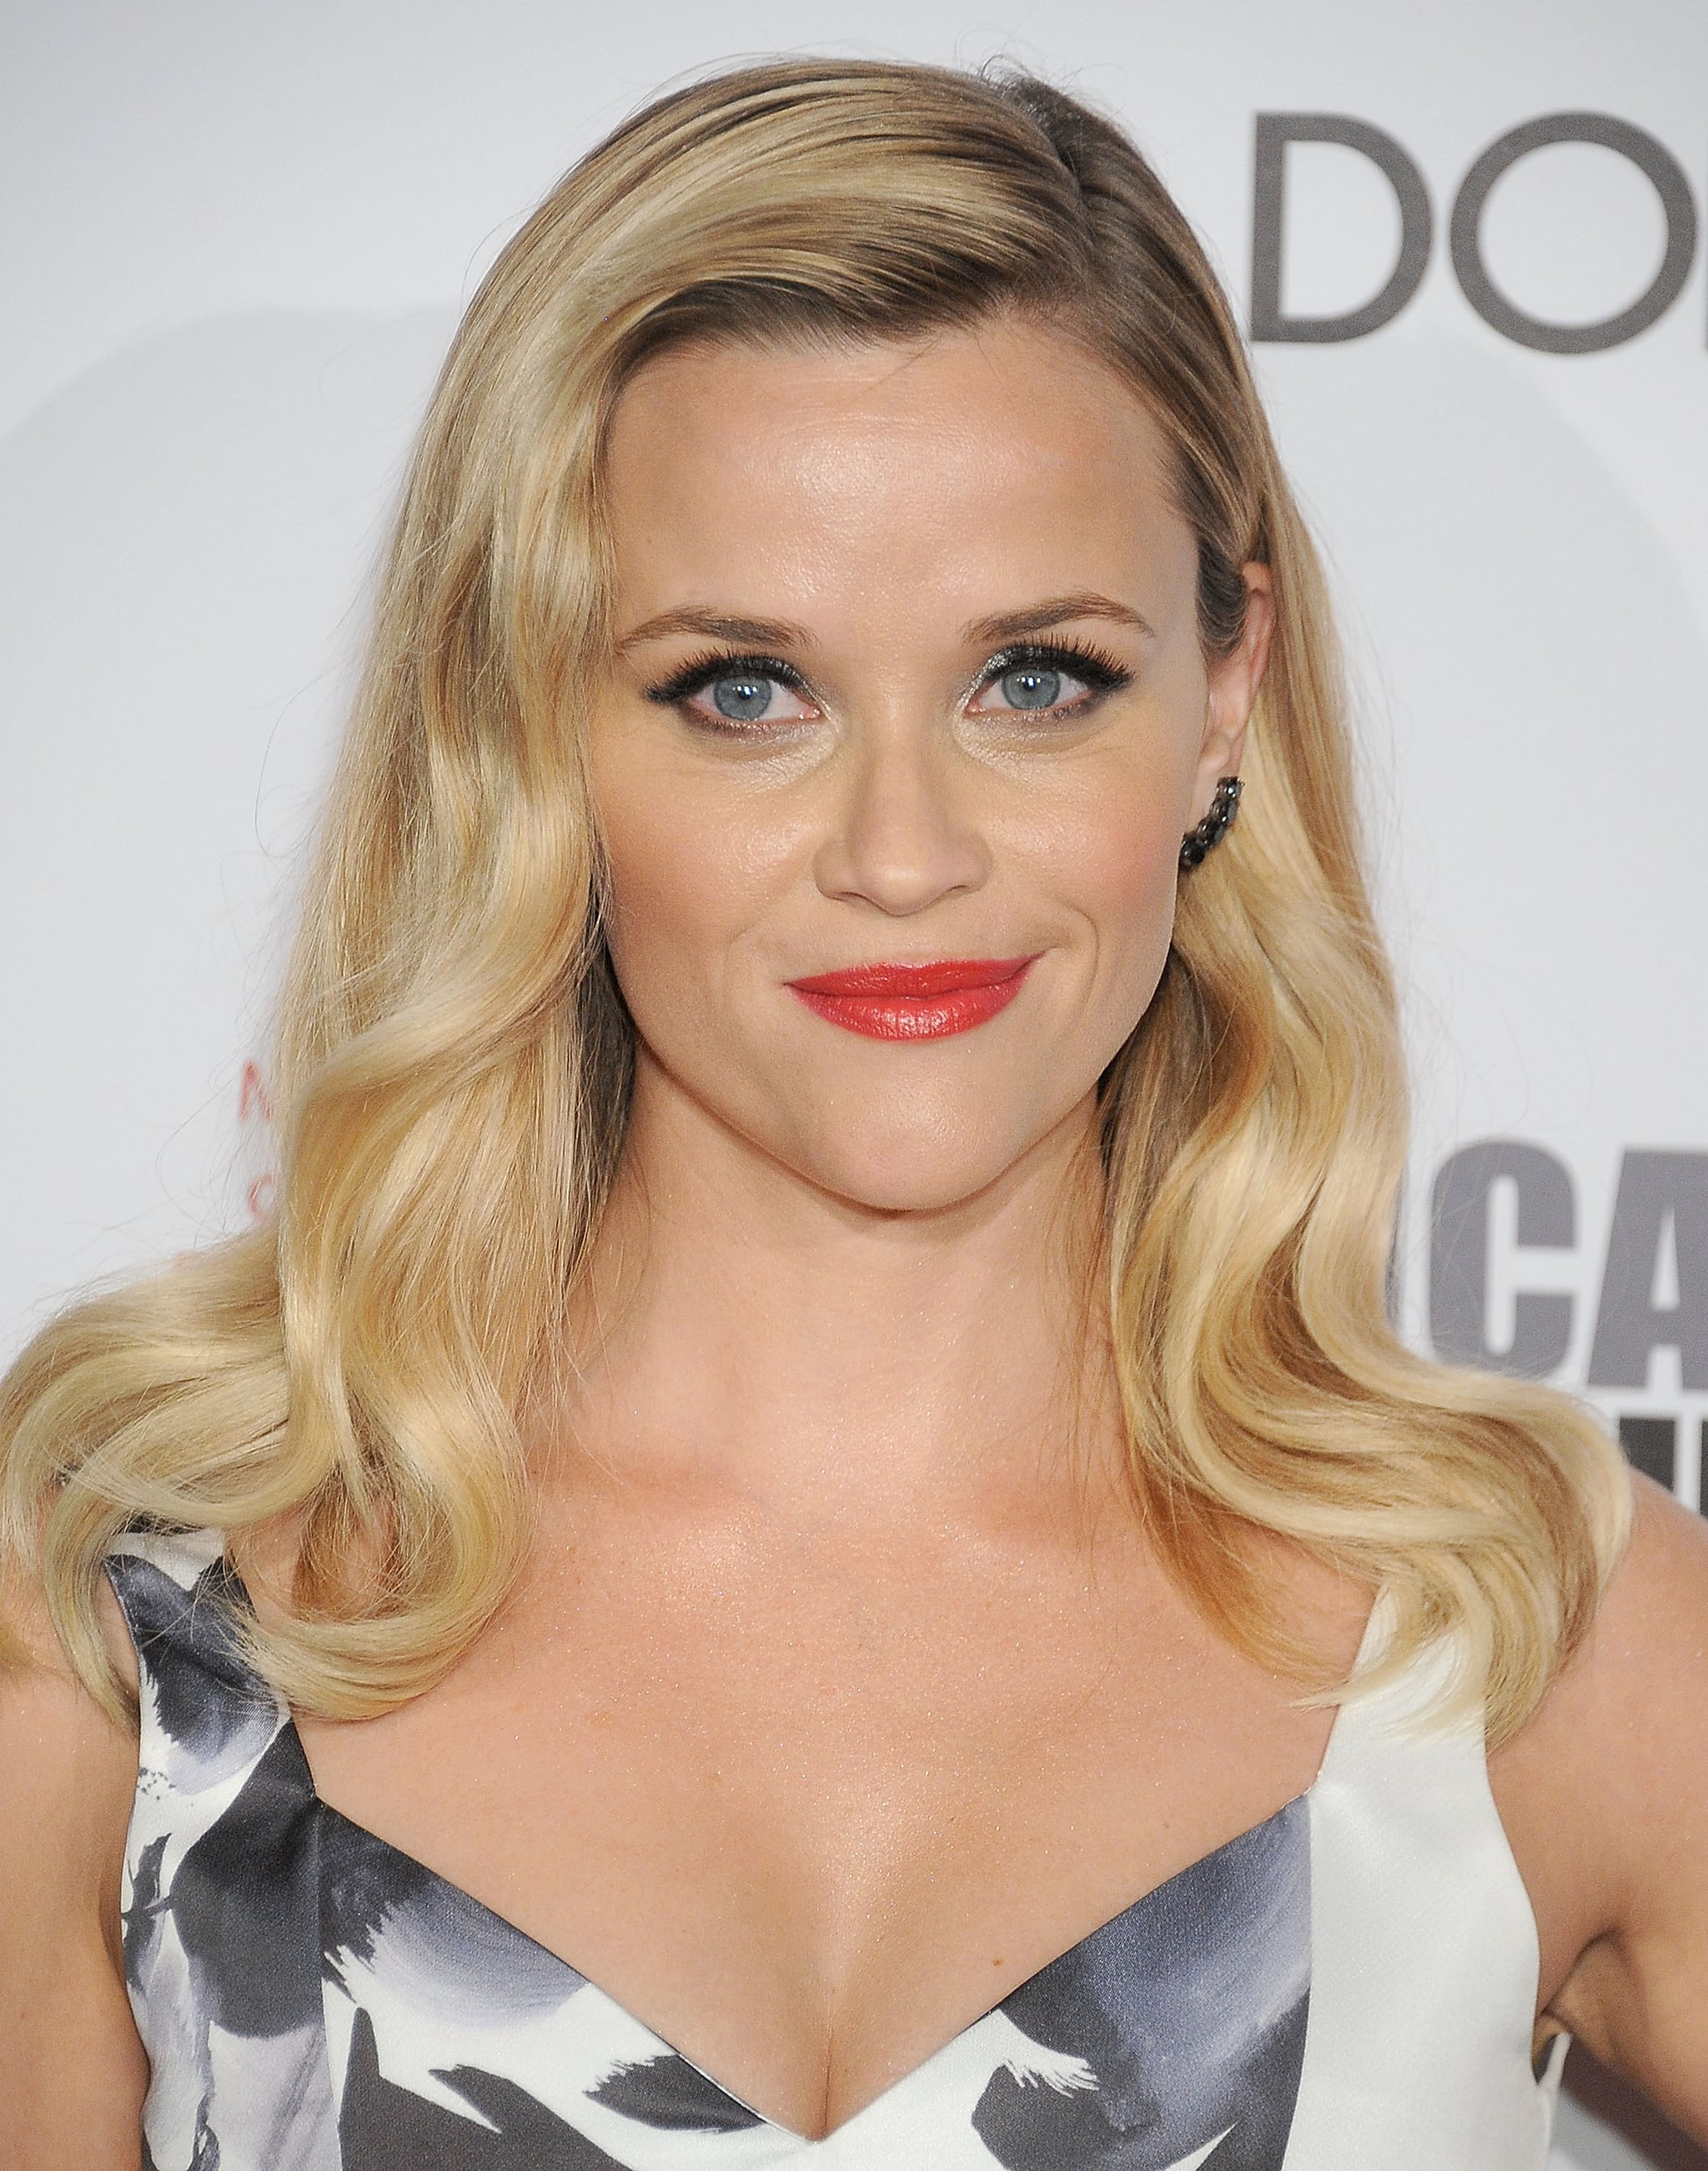 Actress Reese Witherspoon at an Award Function